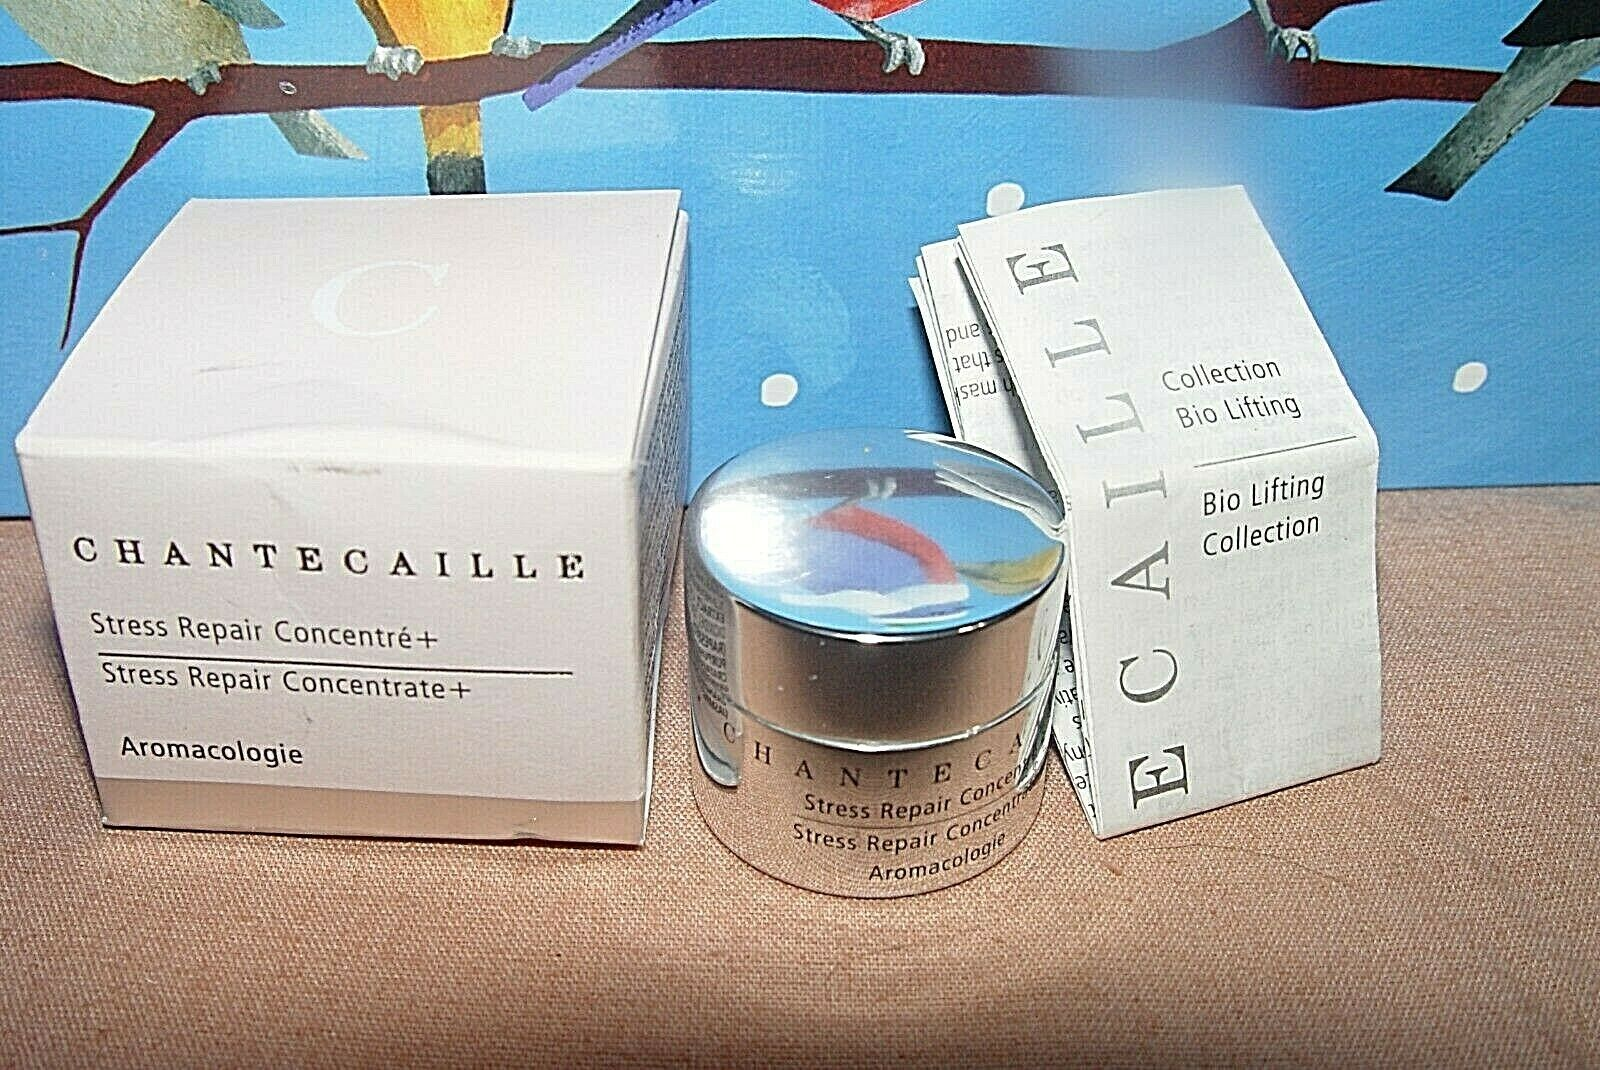 CHANTECAILLE Stress Repair Concentrate 3ml Eyes Lips Sealed Travel Trial NIB - $16.49